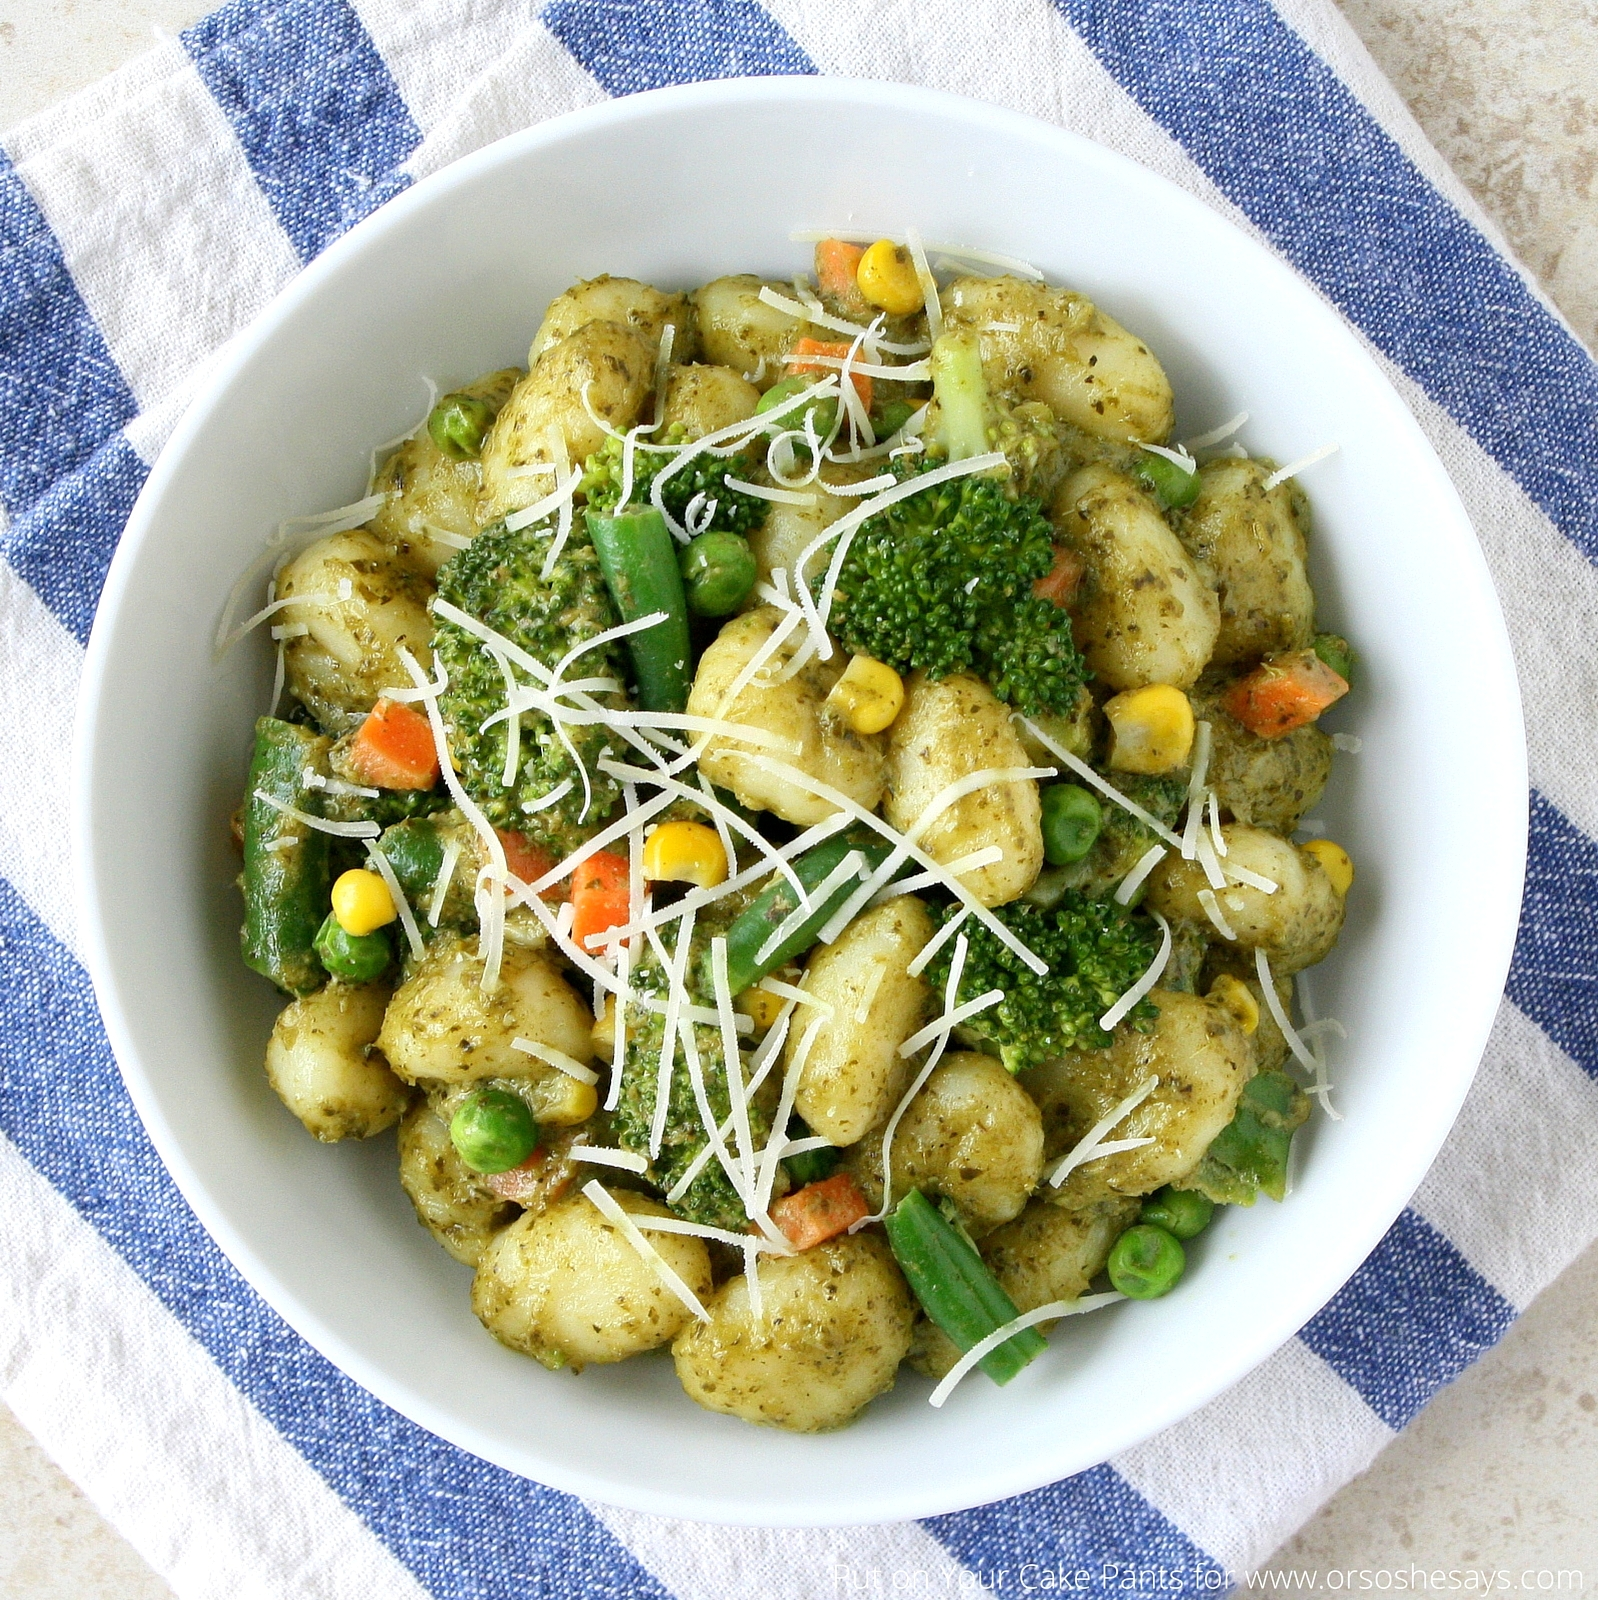 Creamy Pesto Gnocchi - Filled with fresh vegetables and tons of flavor!